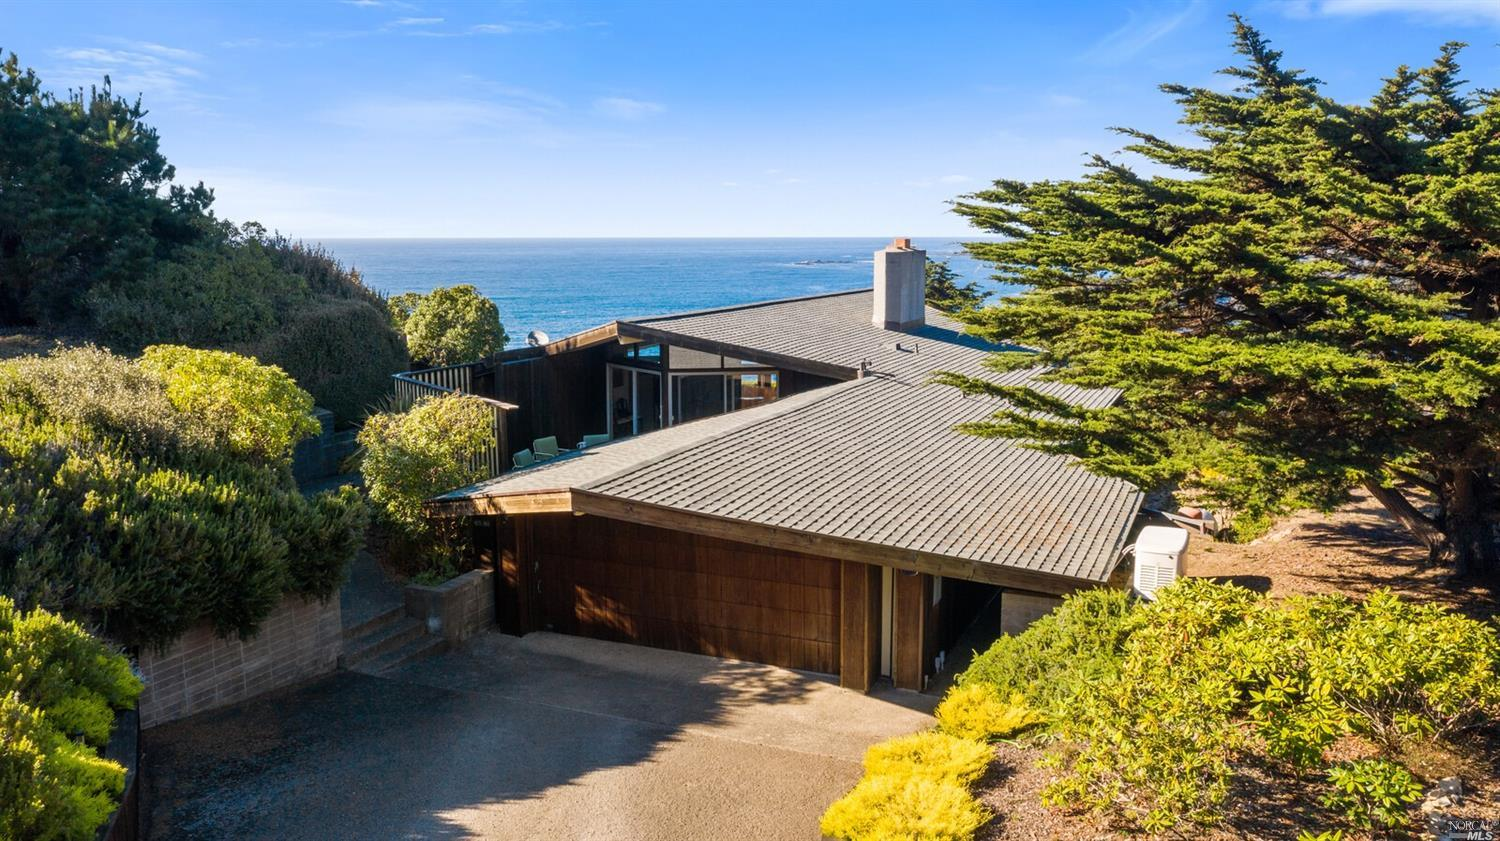 Photo of 6380 N Highway 1, Little River, CA 95456